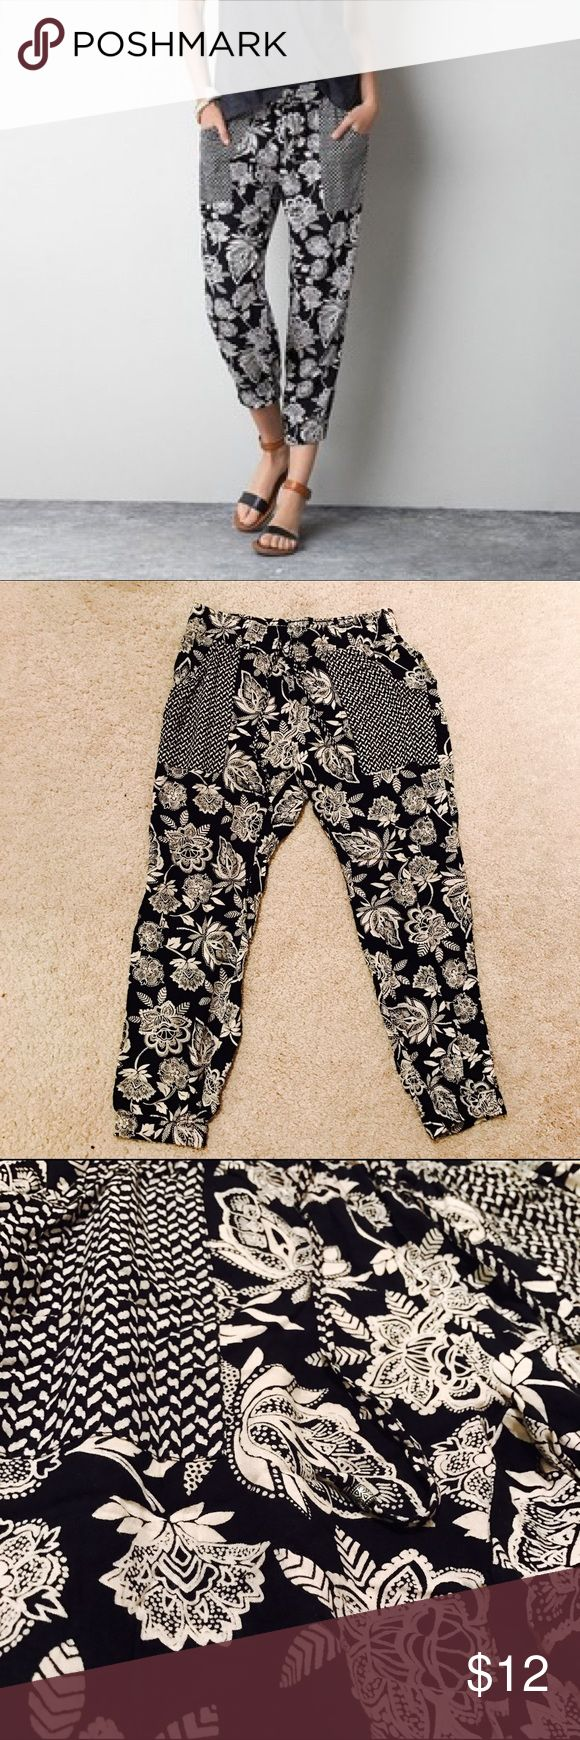 Stunning AEO floral soft pant Stunning soft and comfortable pants in black and off-white floral print. Perfect for spring and summer! American Eagle Outfitters Pants